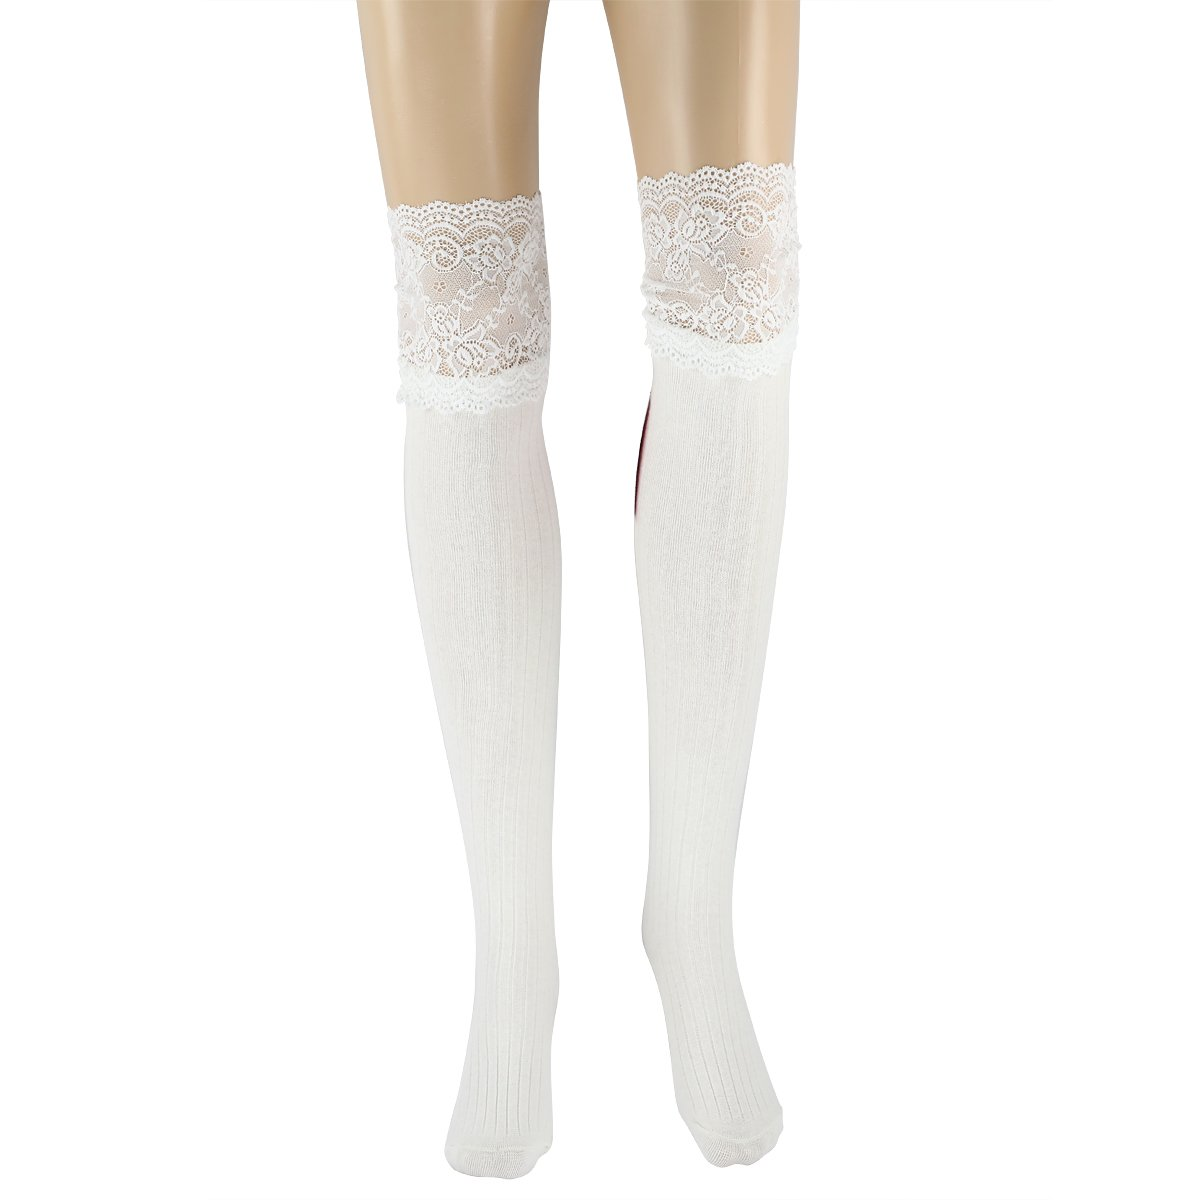 MARRYSUN Women Girls Thigh High Socks Winter Over Knee Leg Warmer - Knit Crochet Socks S15MD0002BK-FS